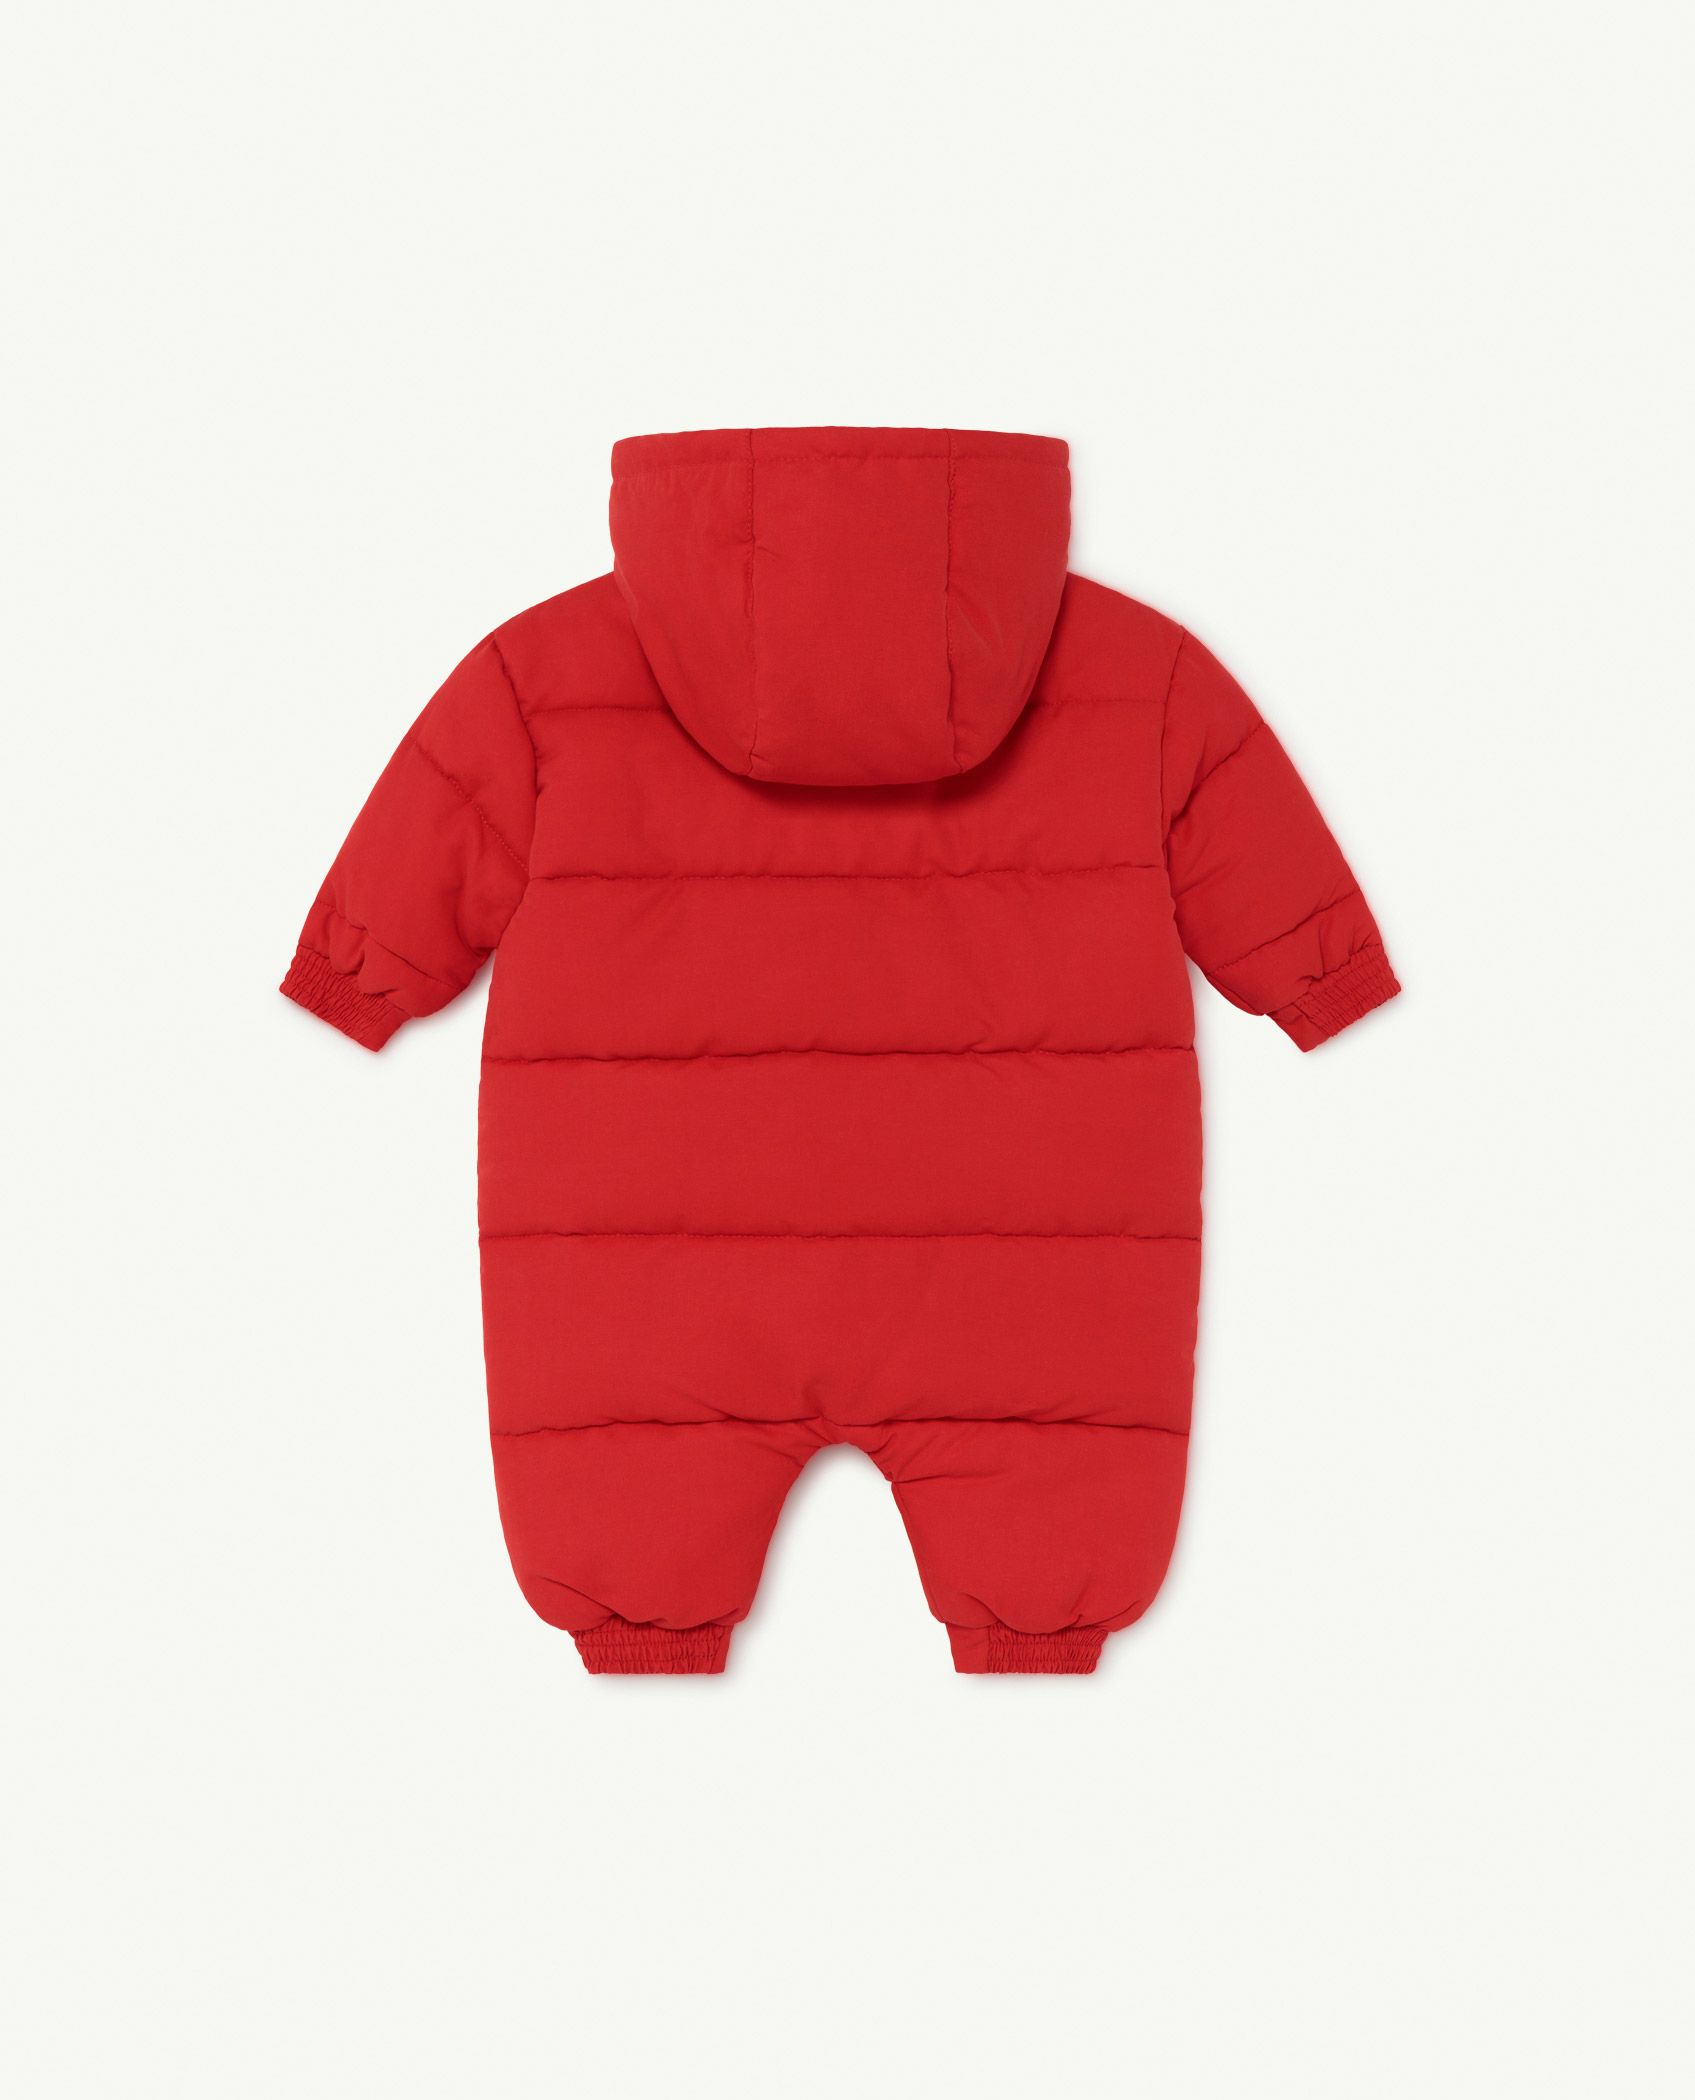 Red The Animals Bumblebee Baby Jumpsuit img-2